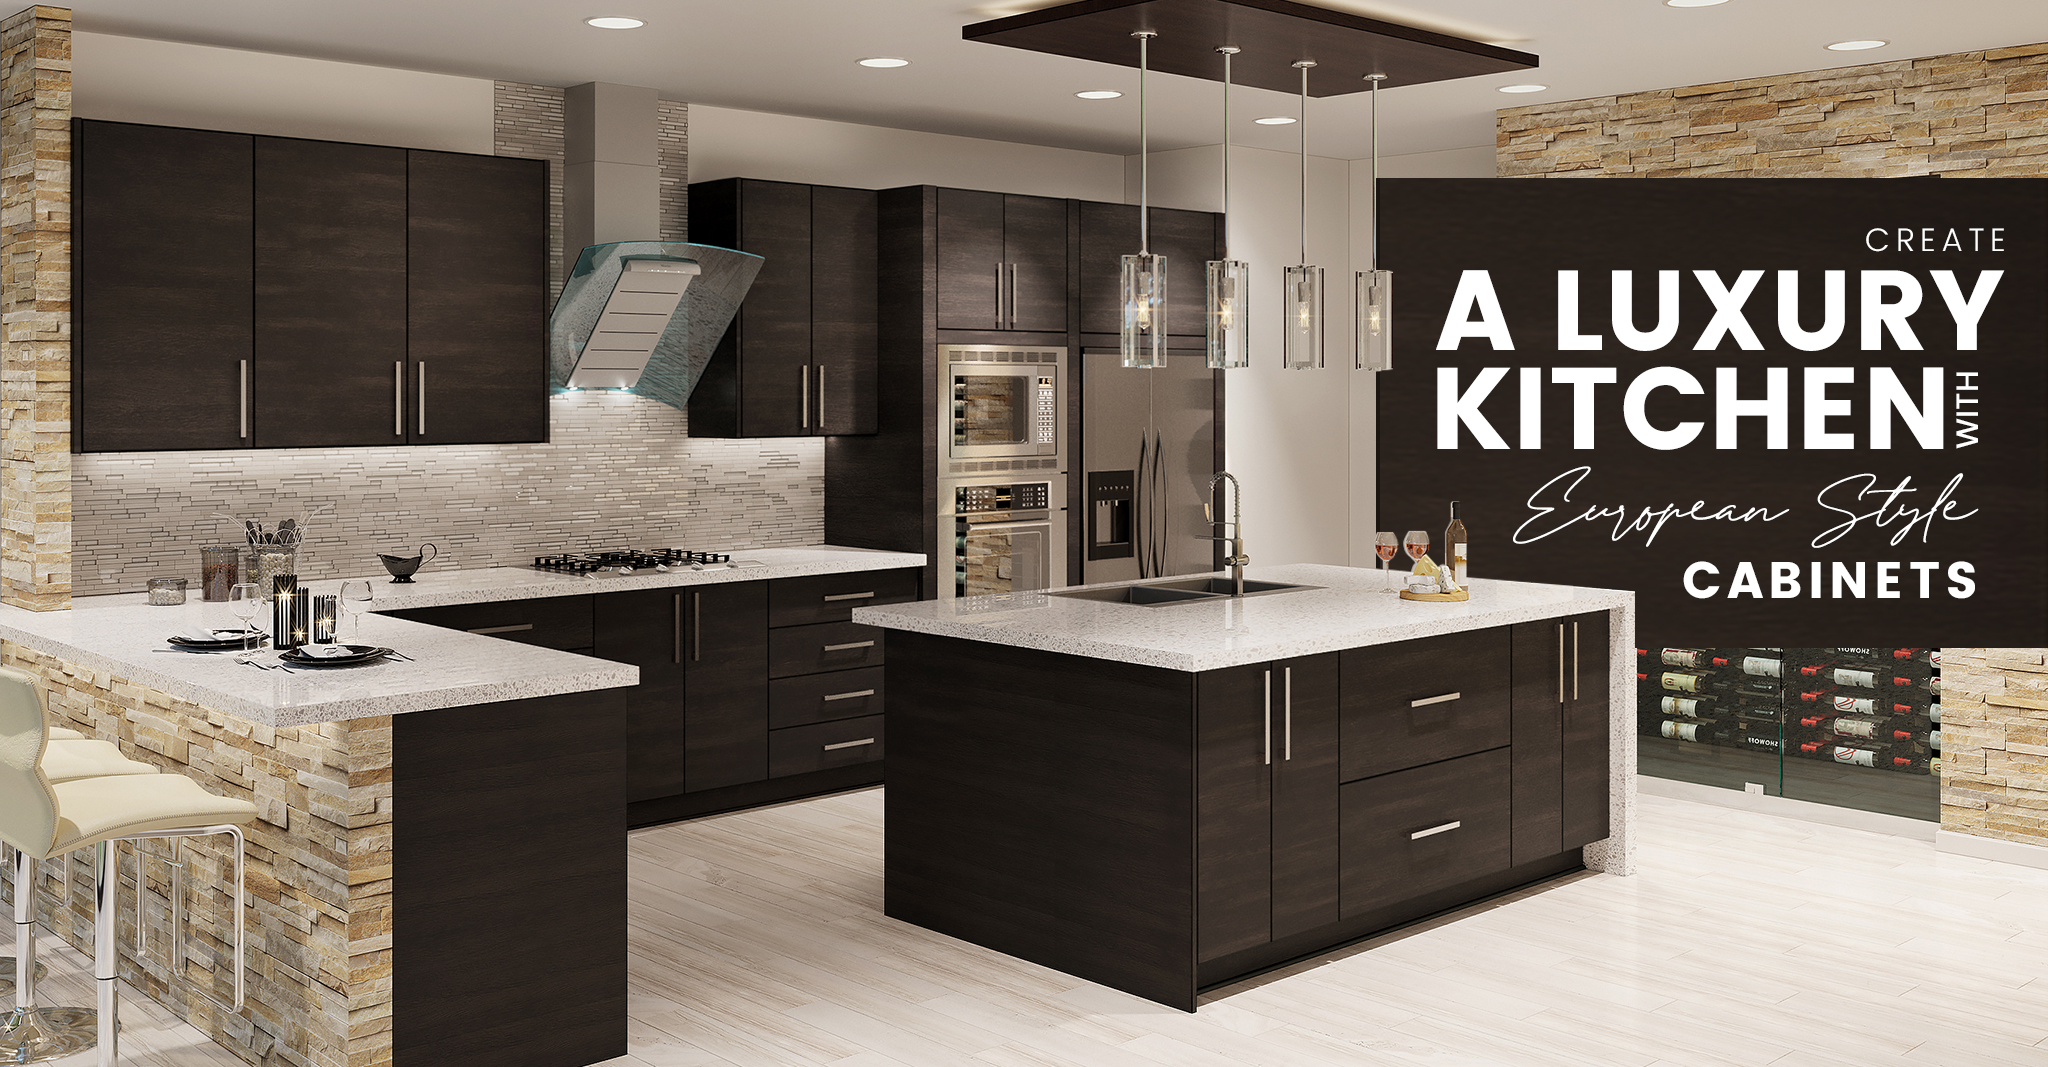 Create a Luxury Kitchen with European Style Cabinets